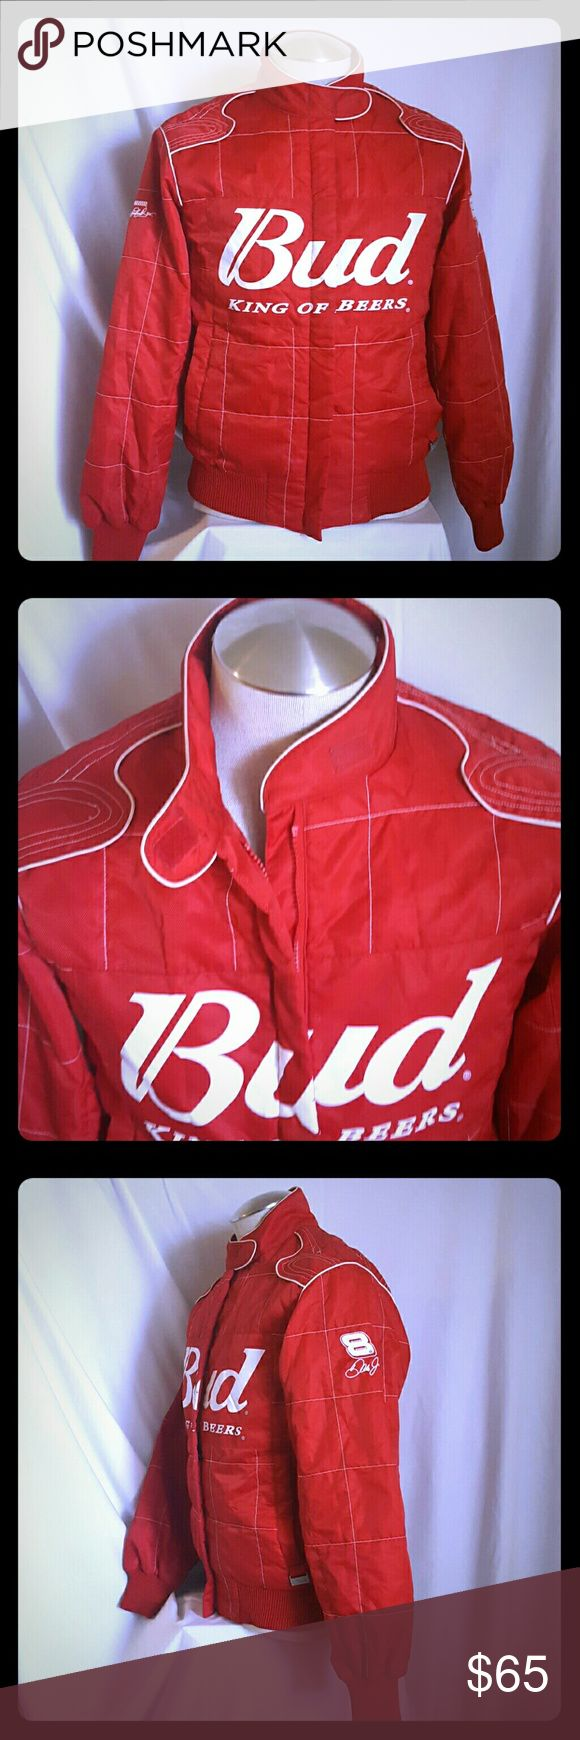 Bud King Of Beers Dale Earnhardt Racing Jacket Nascar Strap over neck Zip up 2 side snap pockets M Made in China  Women   Machine wash 100% polyester  Made in China  Dry clean only   Gently used  Size may vary depending on preference   Great piece for any dale Earnhardt collector, nascar fan or just to be cool   Shipped with care Buy with confidence from us   Please review all pictures and descriptions to verify what you are buying   Thank you for checking out my listings today Chase…